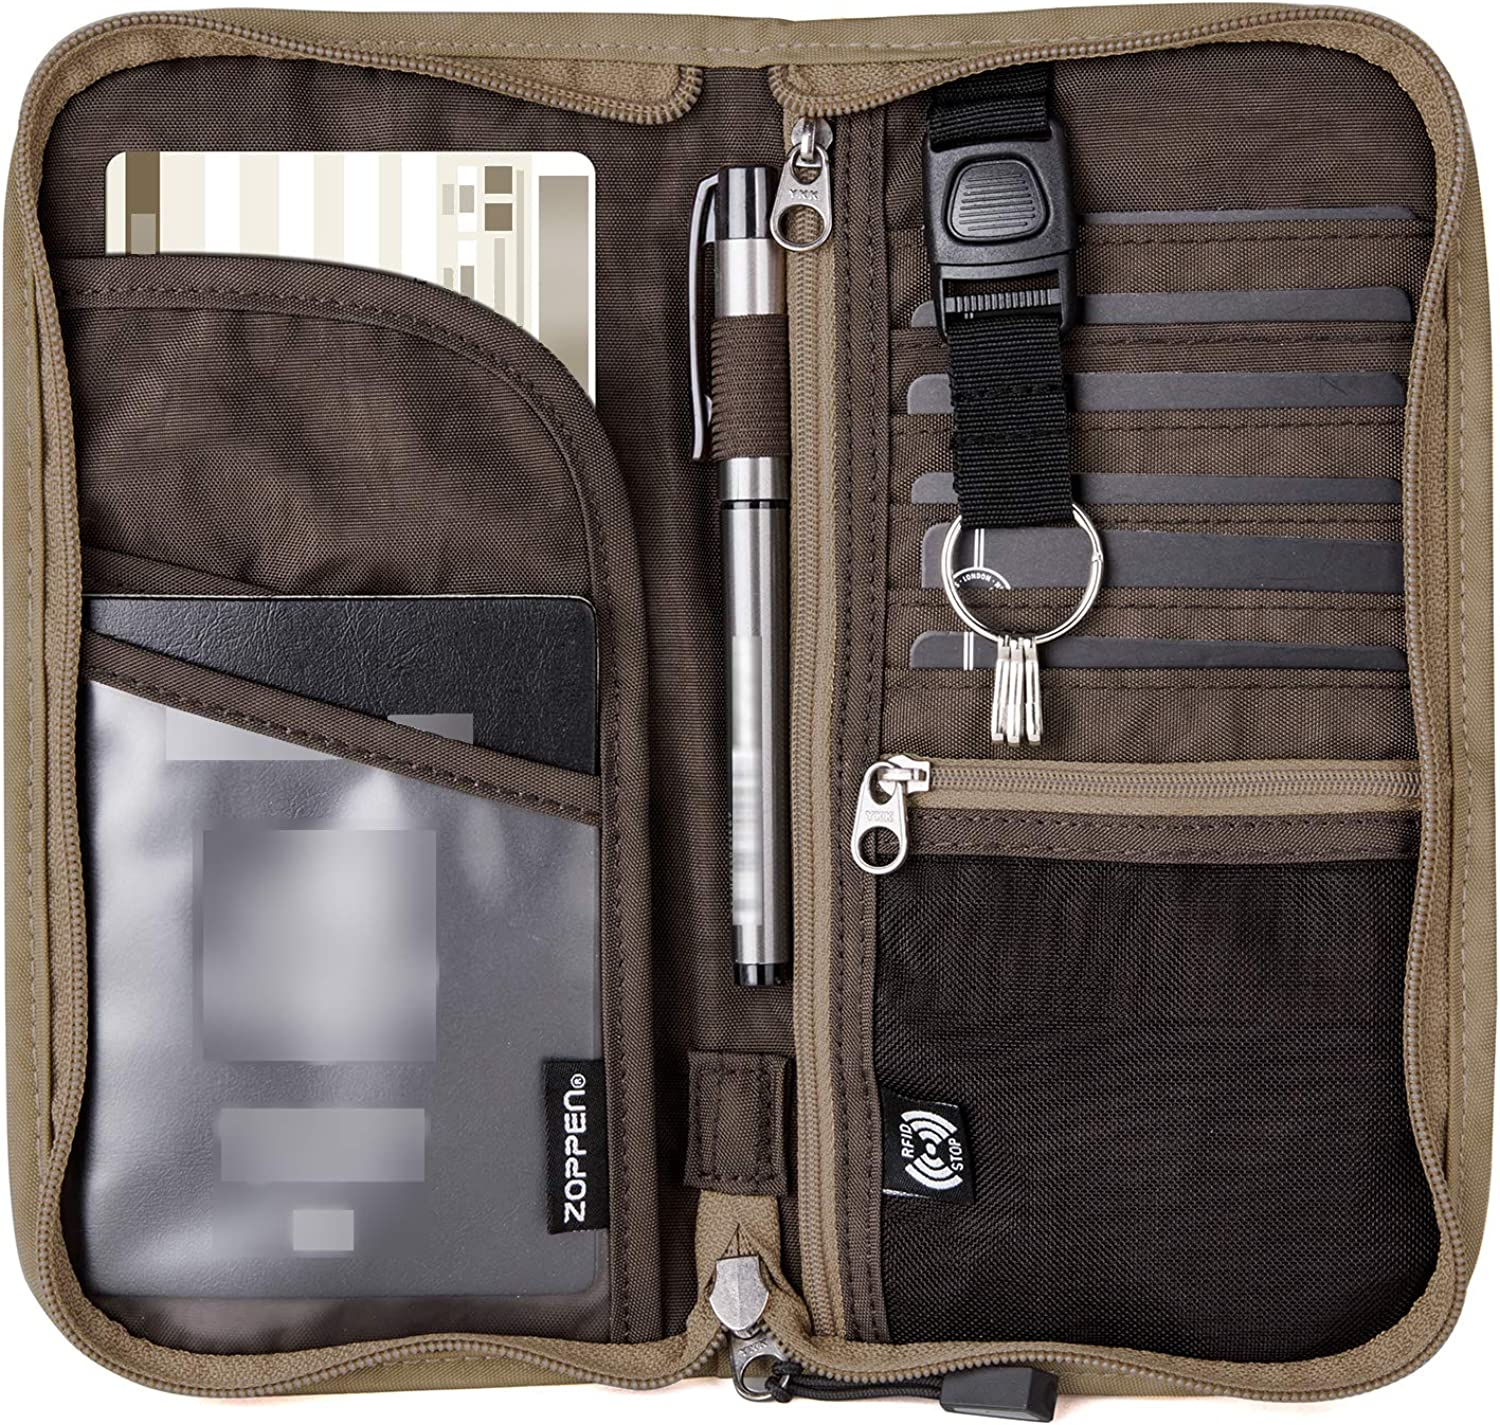 Max 85% OFF SEAL limited product Zoppen RFID Travel Passport Documents Wallet Zipper Organizer